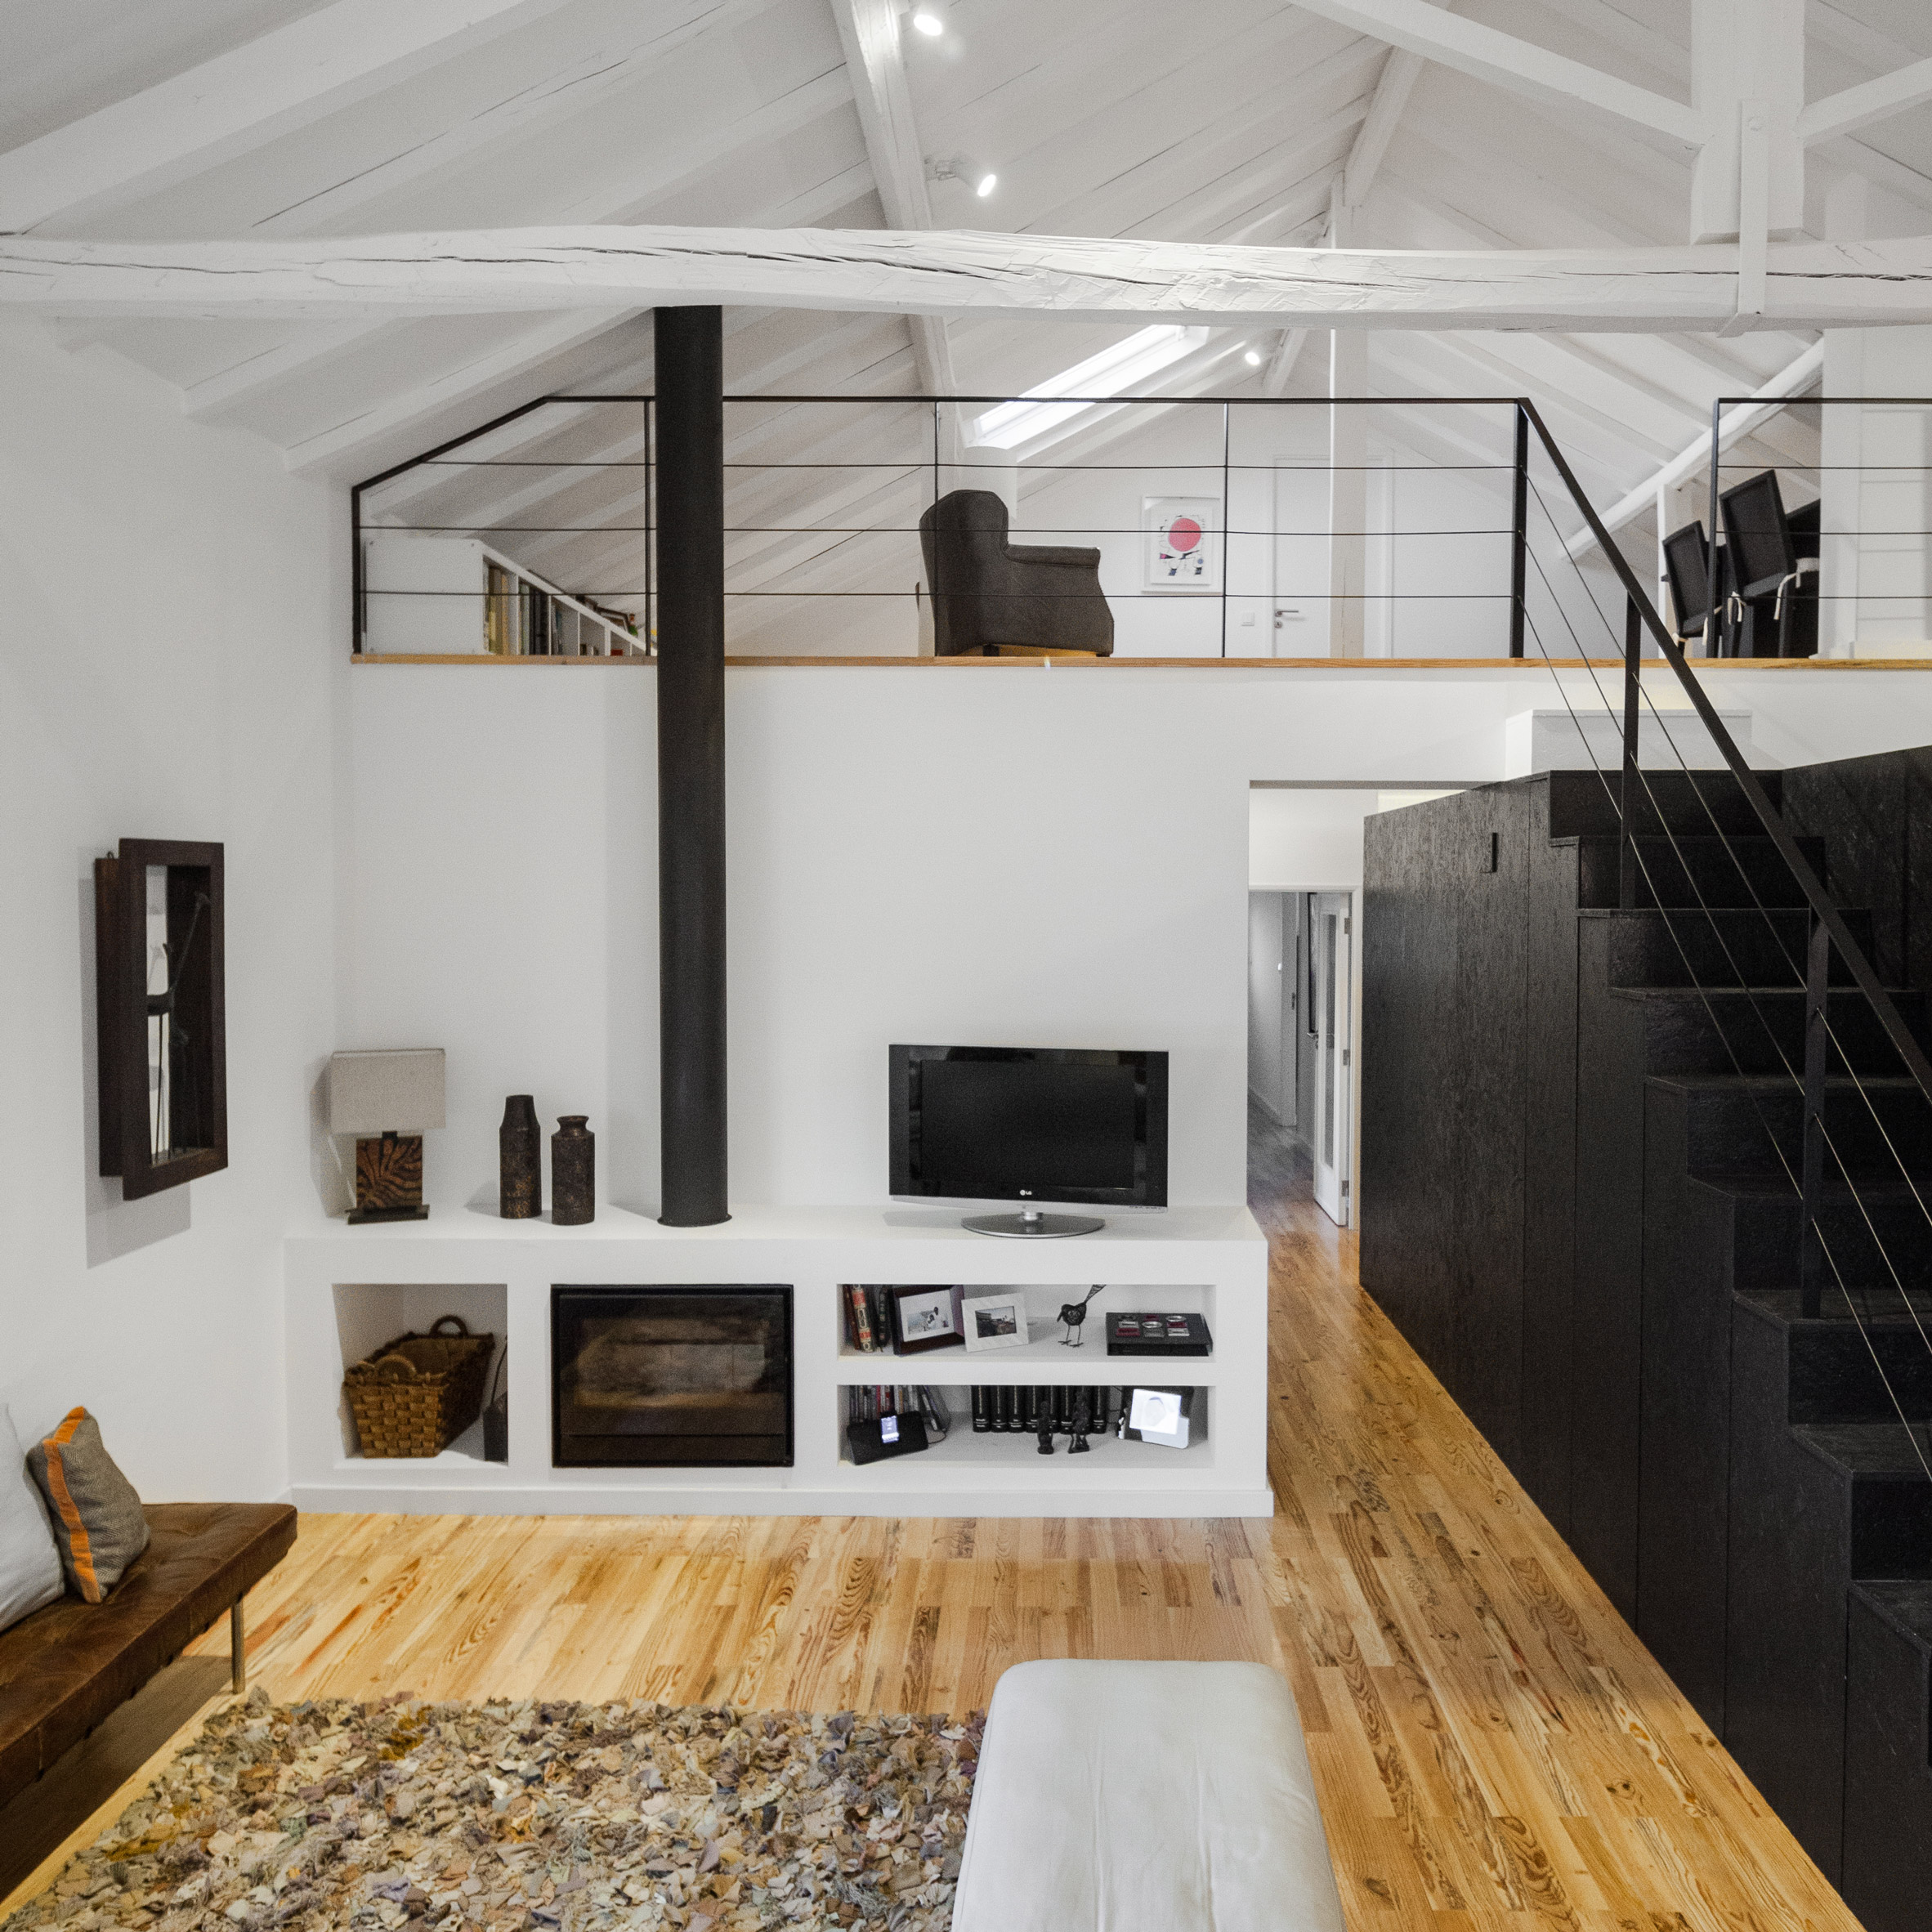 10 homes from Dezeen's Pinterest boards that take mezzanines to new heights